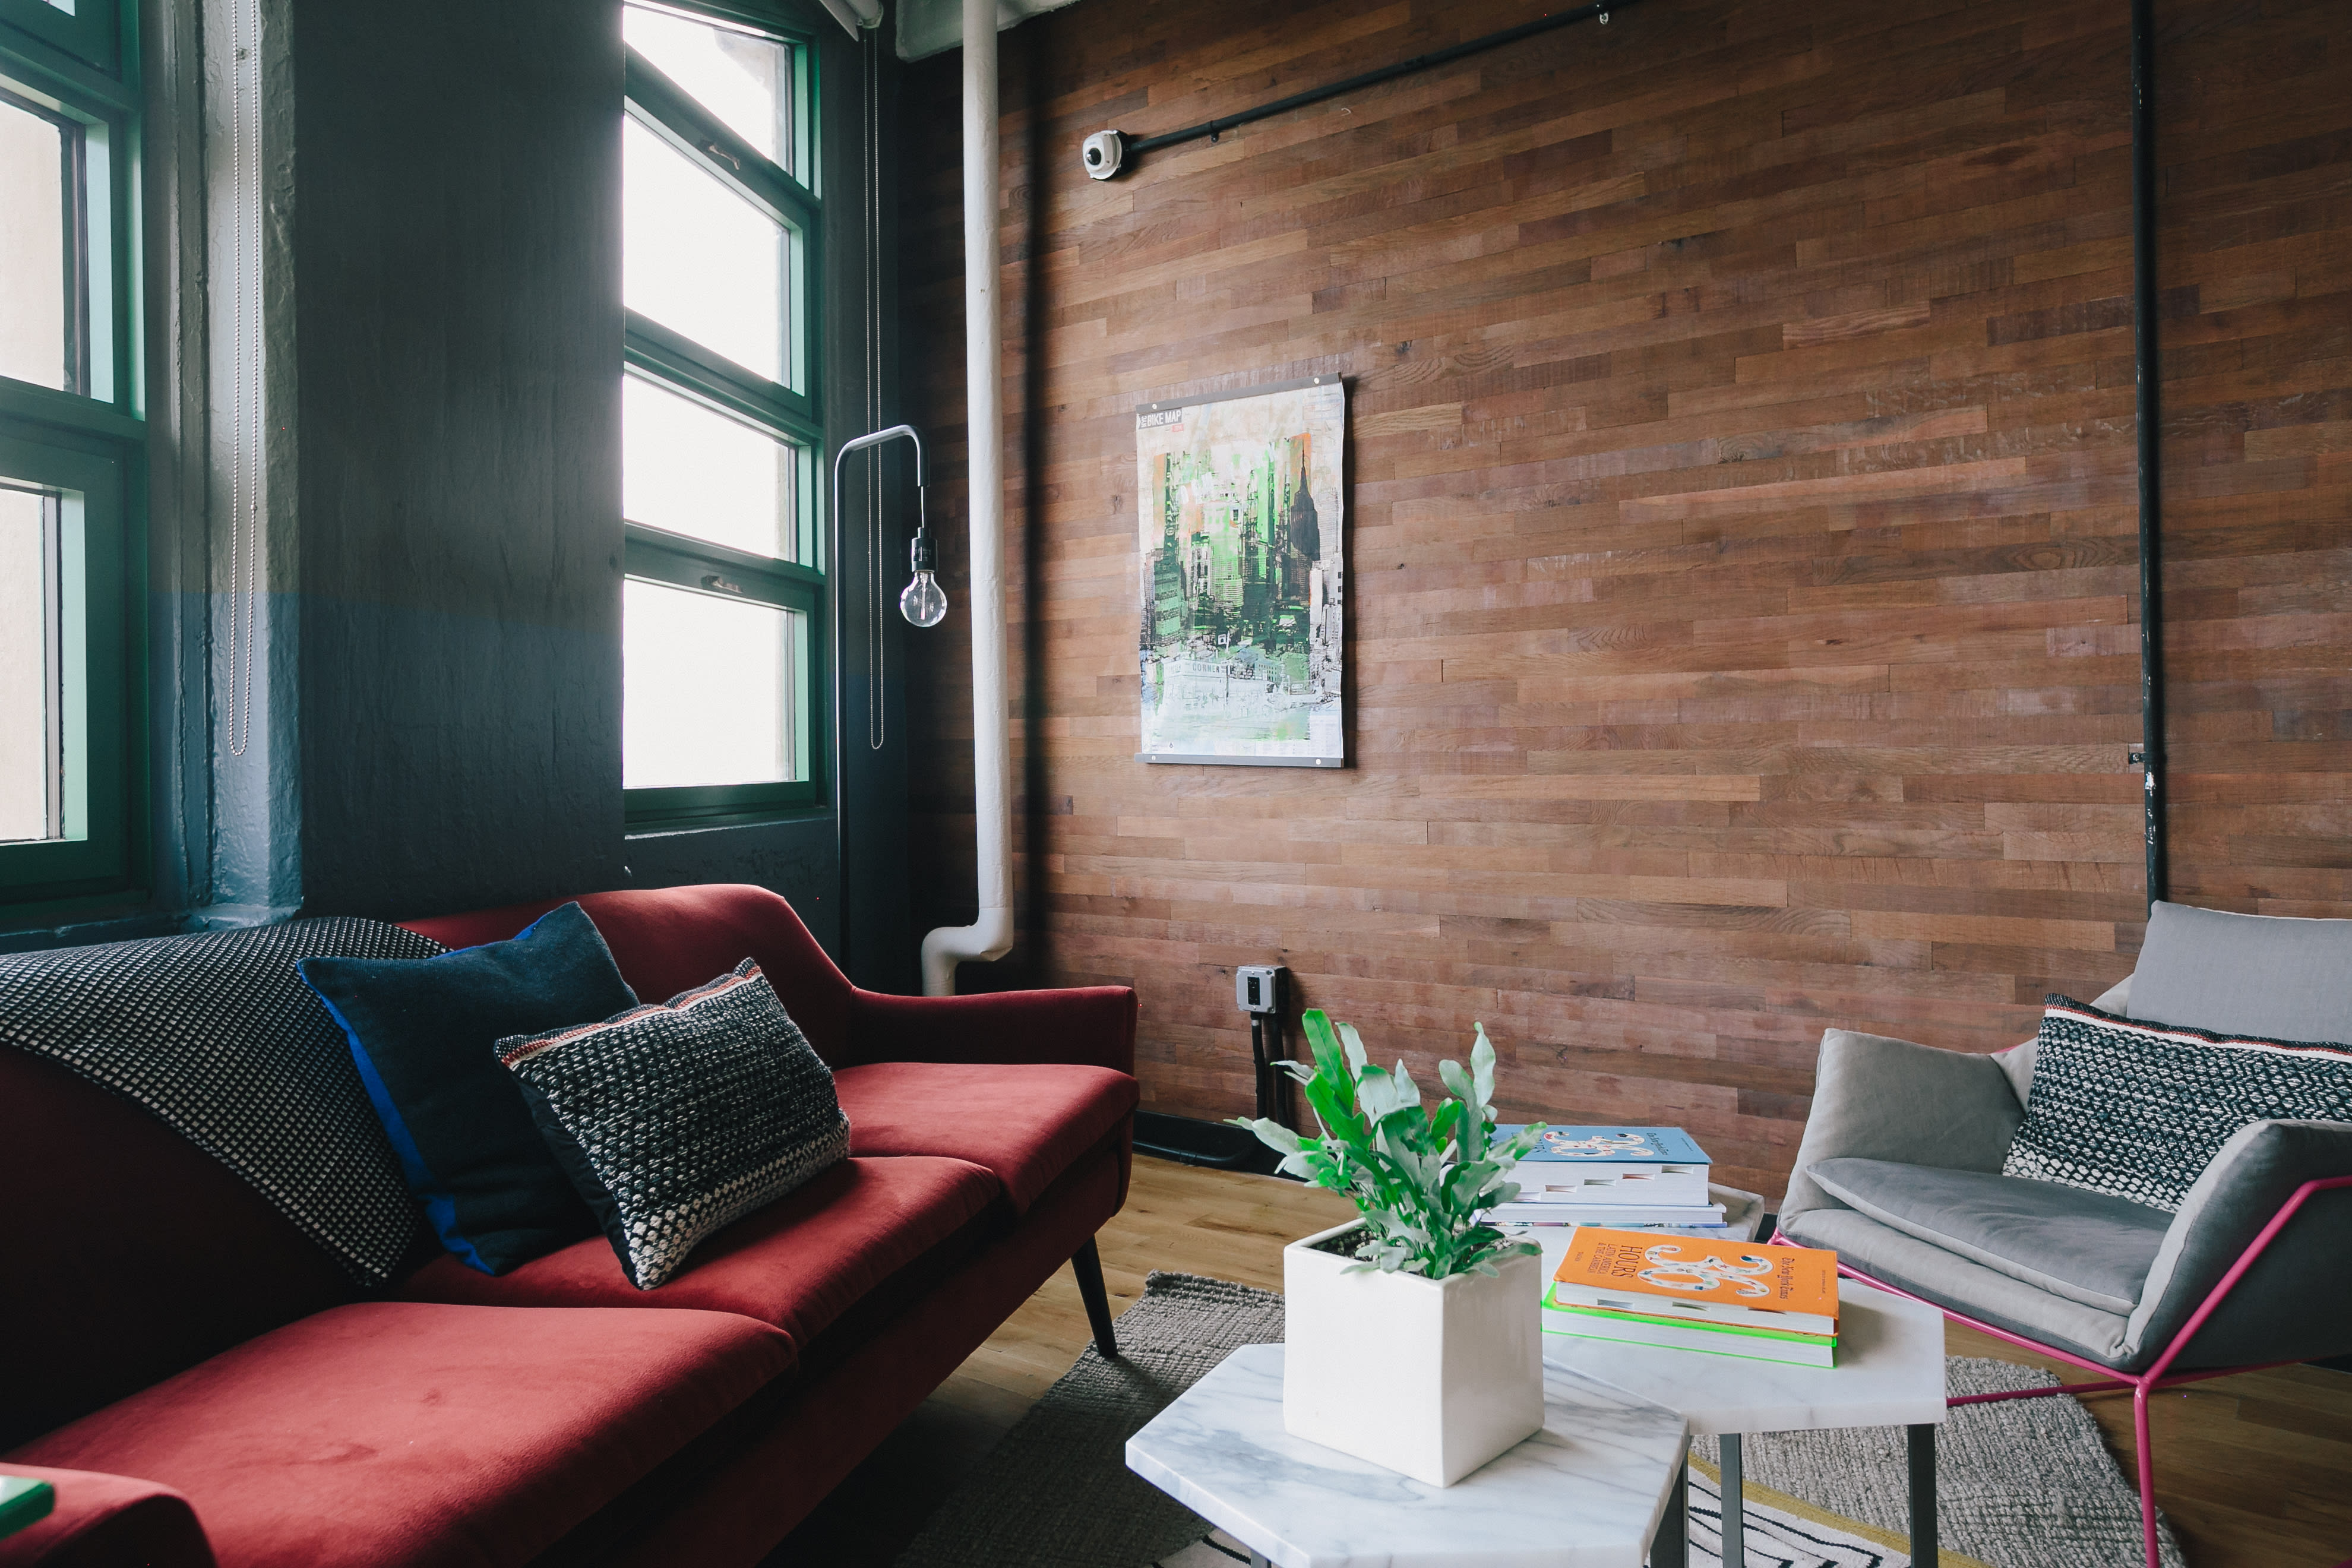 Modern loft apartment living room with contemporary furniture and a large Stikwood peel and stick wood accent wall in Reclaimed Barrel Oak plank finish.